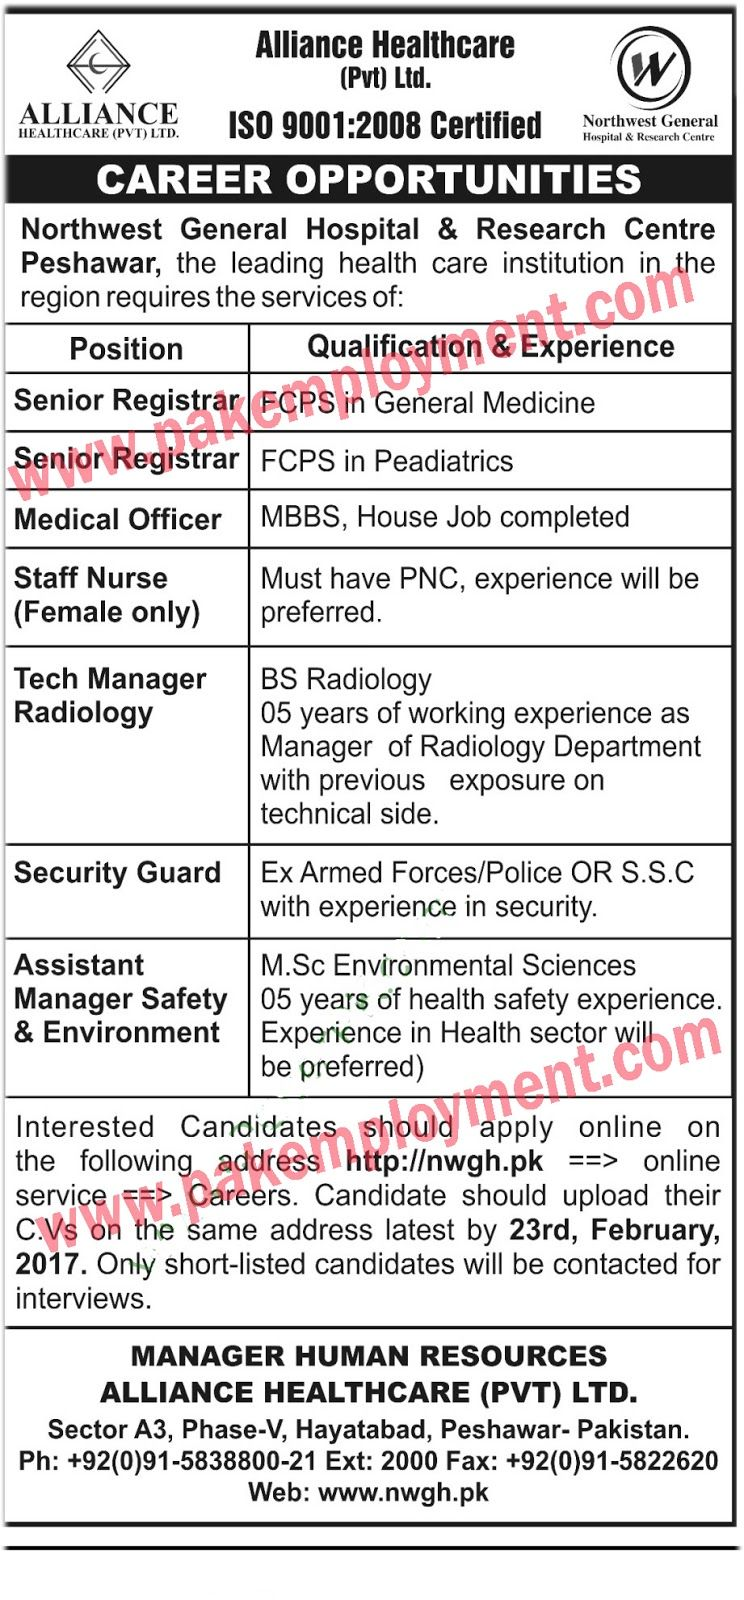 Pakistan Employment Alliance Healthcar Pvt Ltd Jobs Latest